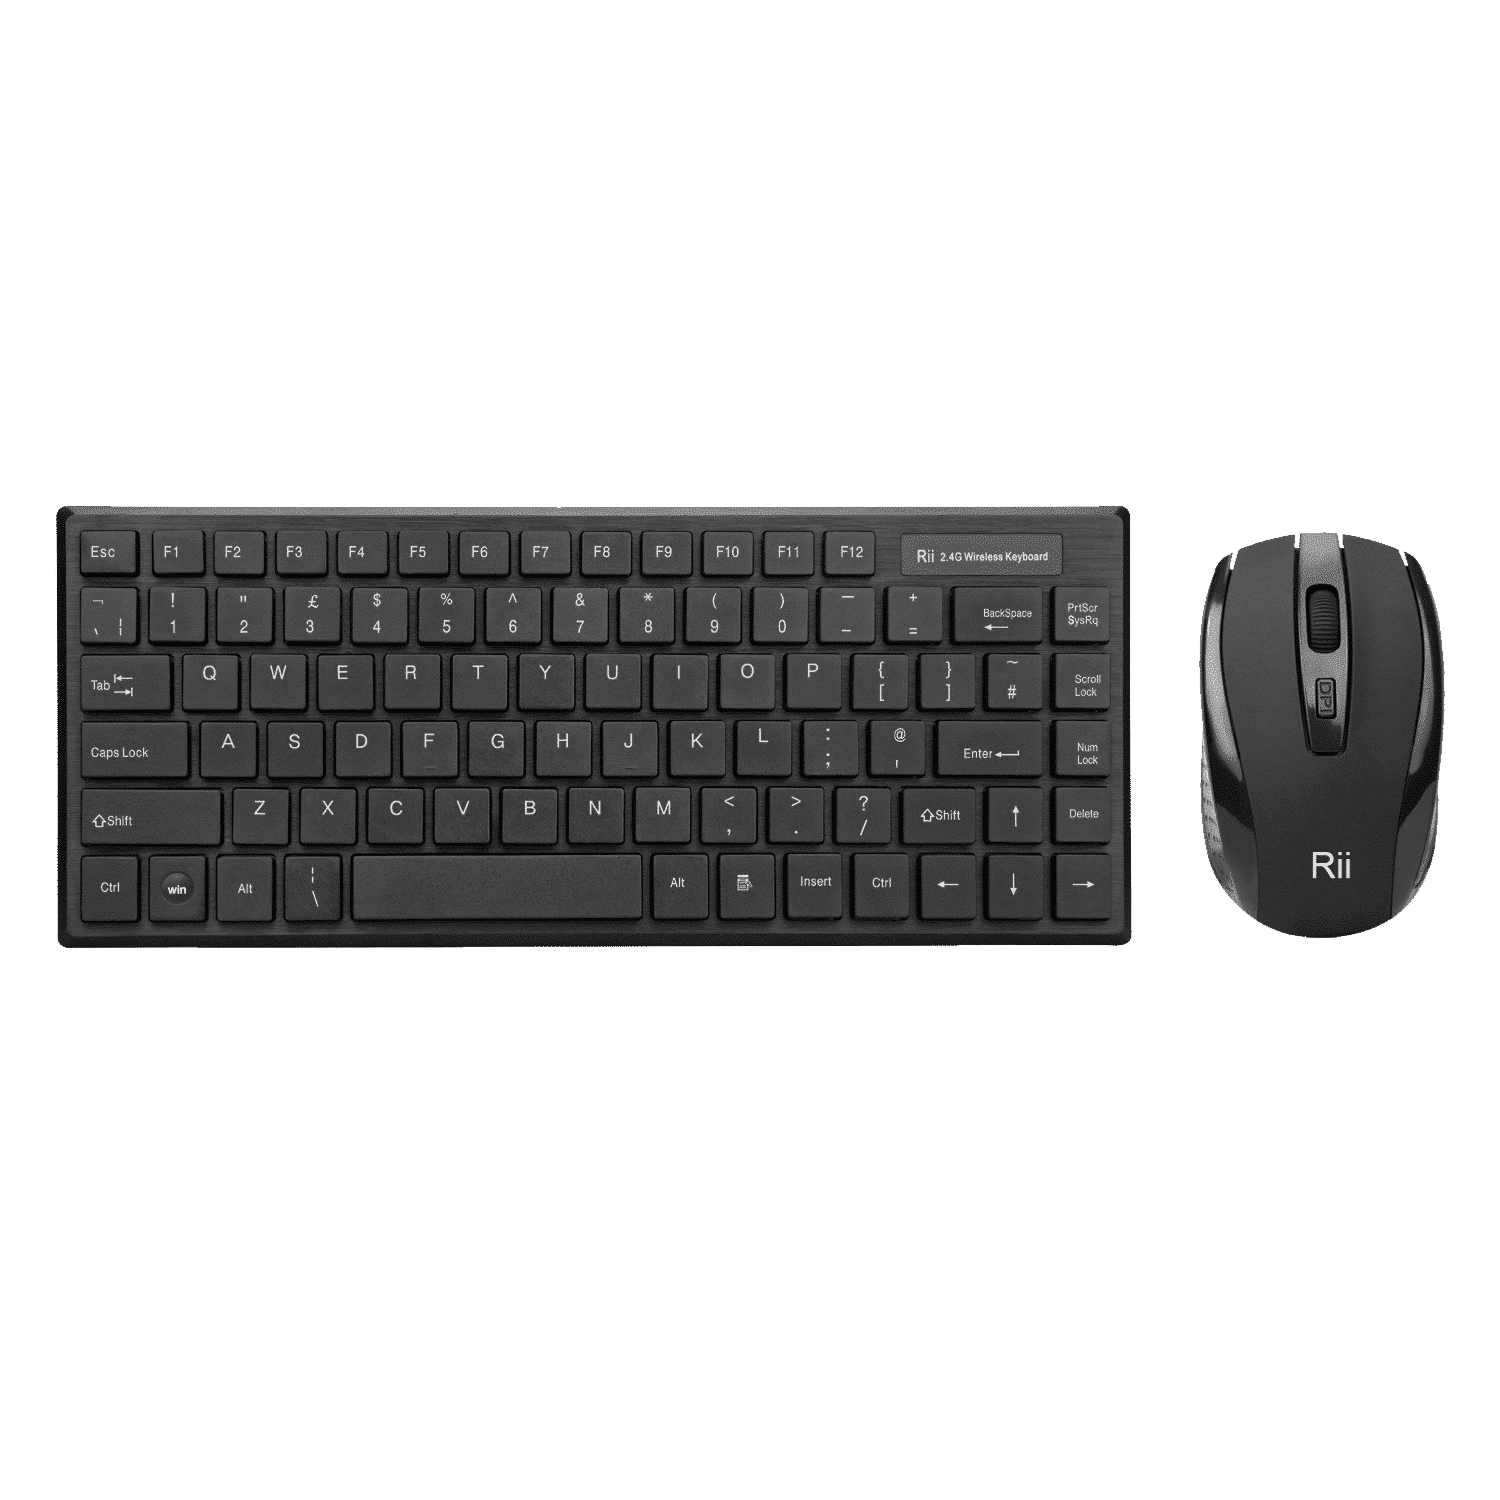 Rii RK700 Wireless Keyboard with Mouse Combo from the front